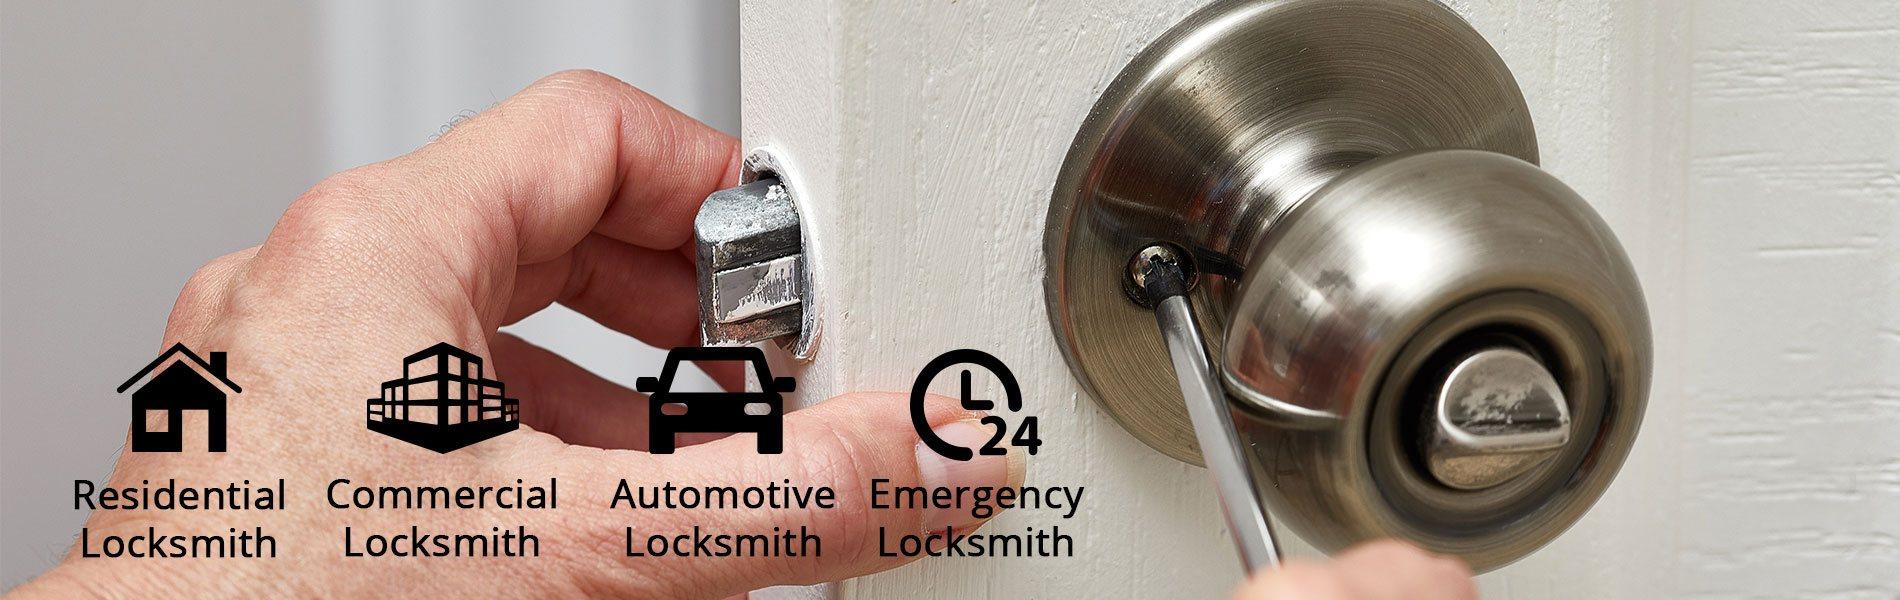 Lock Locksmith Services Fort Myers, FL 239-451-3027